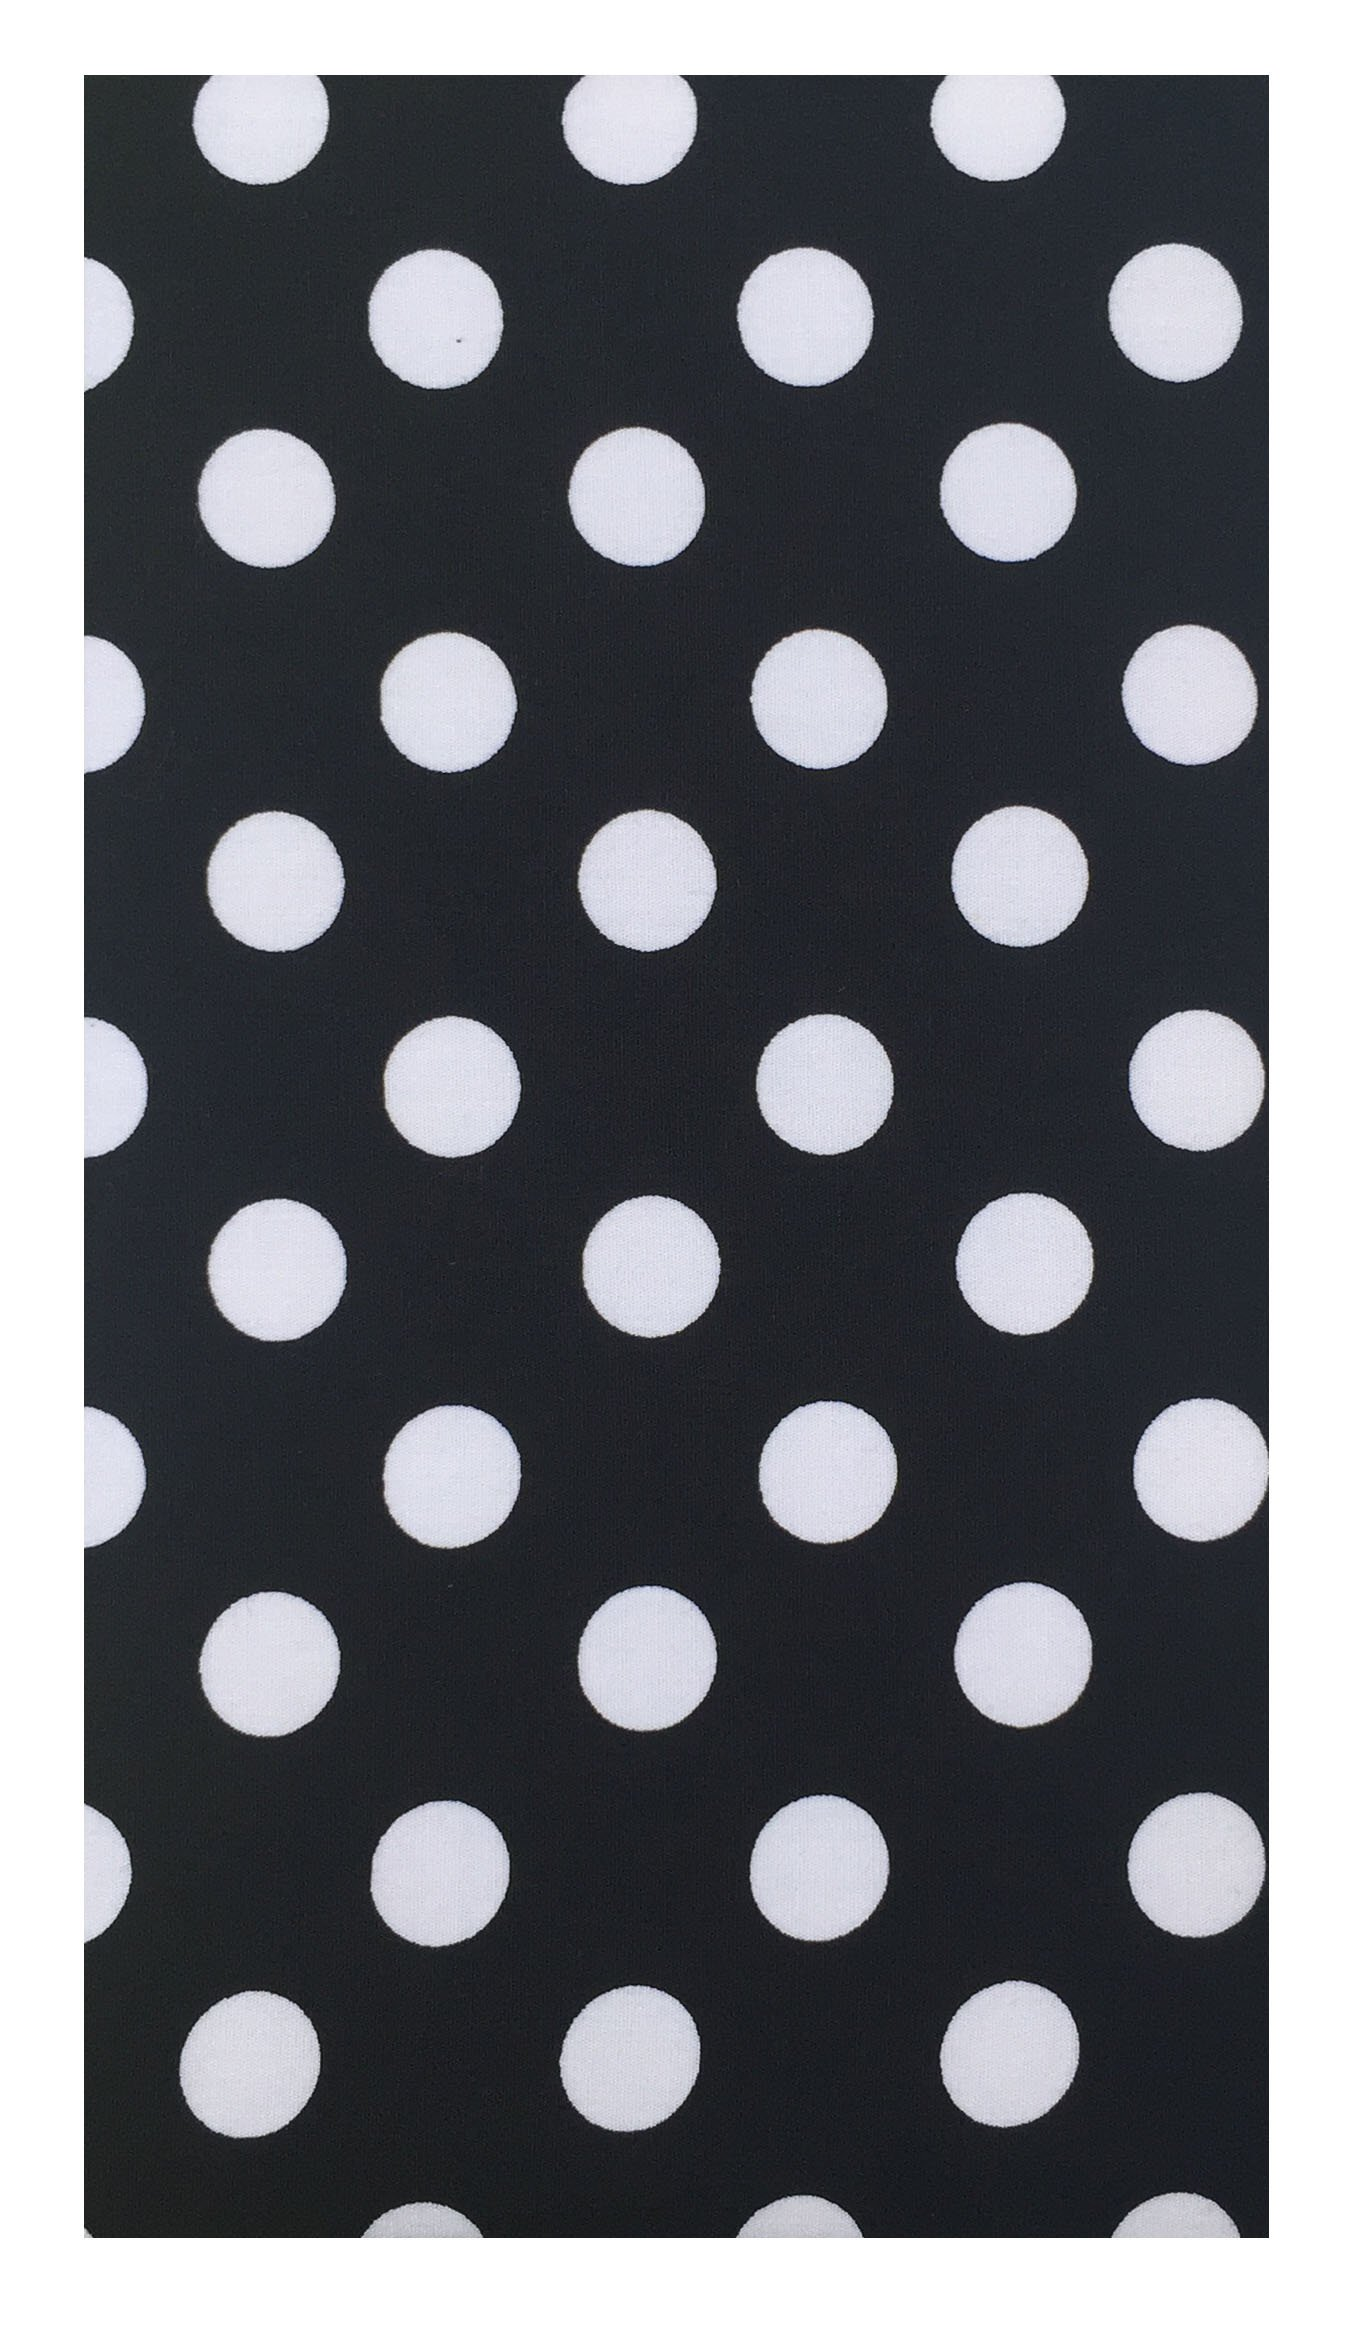 Home & Kitchen Black & White Polka Dot Cotton Guest Check Presenter, Check Book Holder for Restaurant, Checkbook Cover, Check Pad Holder, Waitstaff Organizer, Server Book for Waiters (With Plastic Cover)